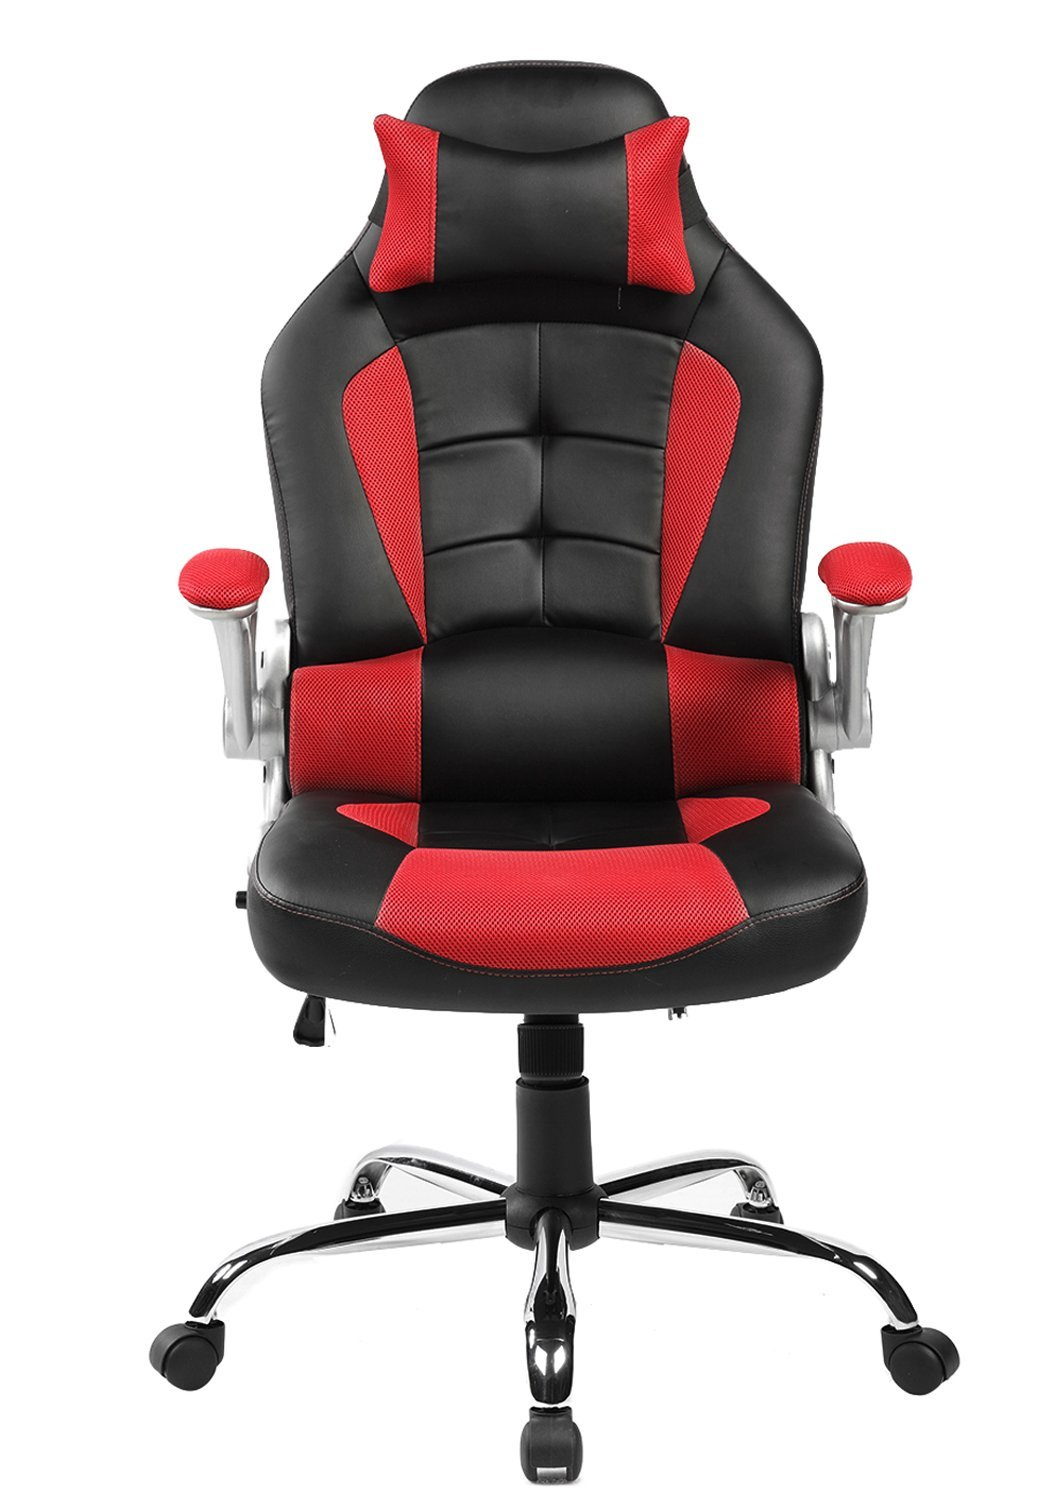 computer chairs amazon.com: merax king series high-back ergonomic pu leather office chair VFUUFXP